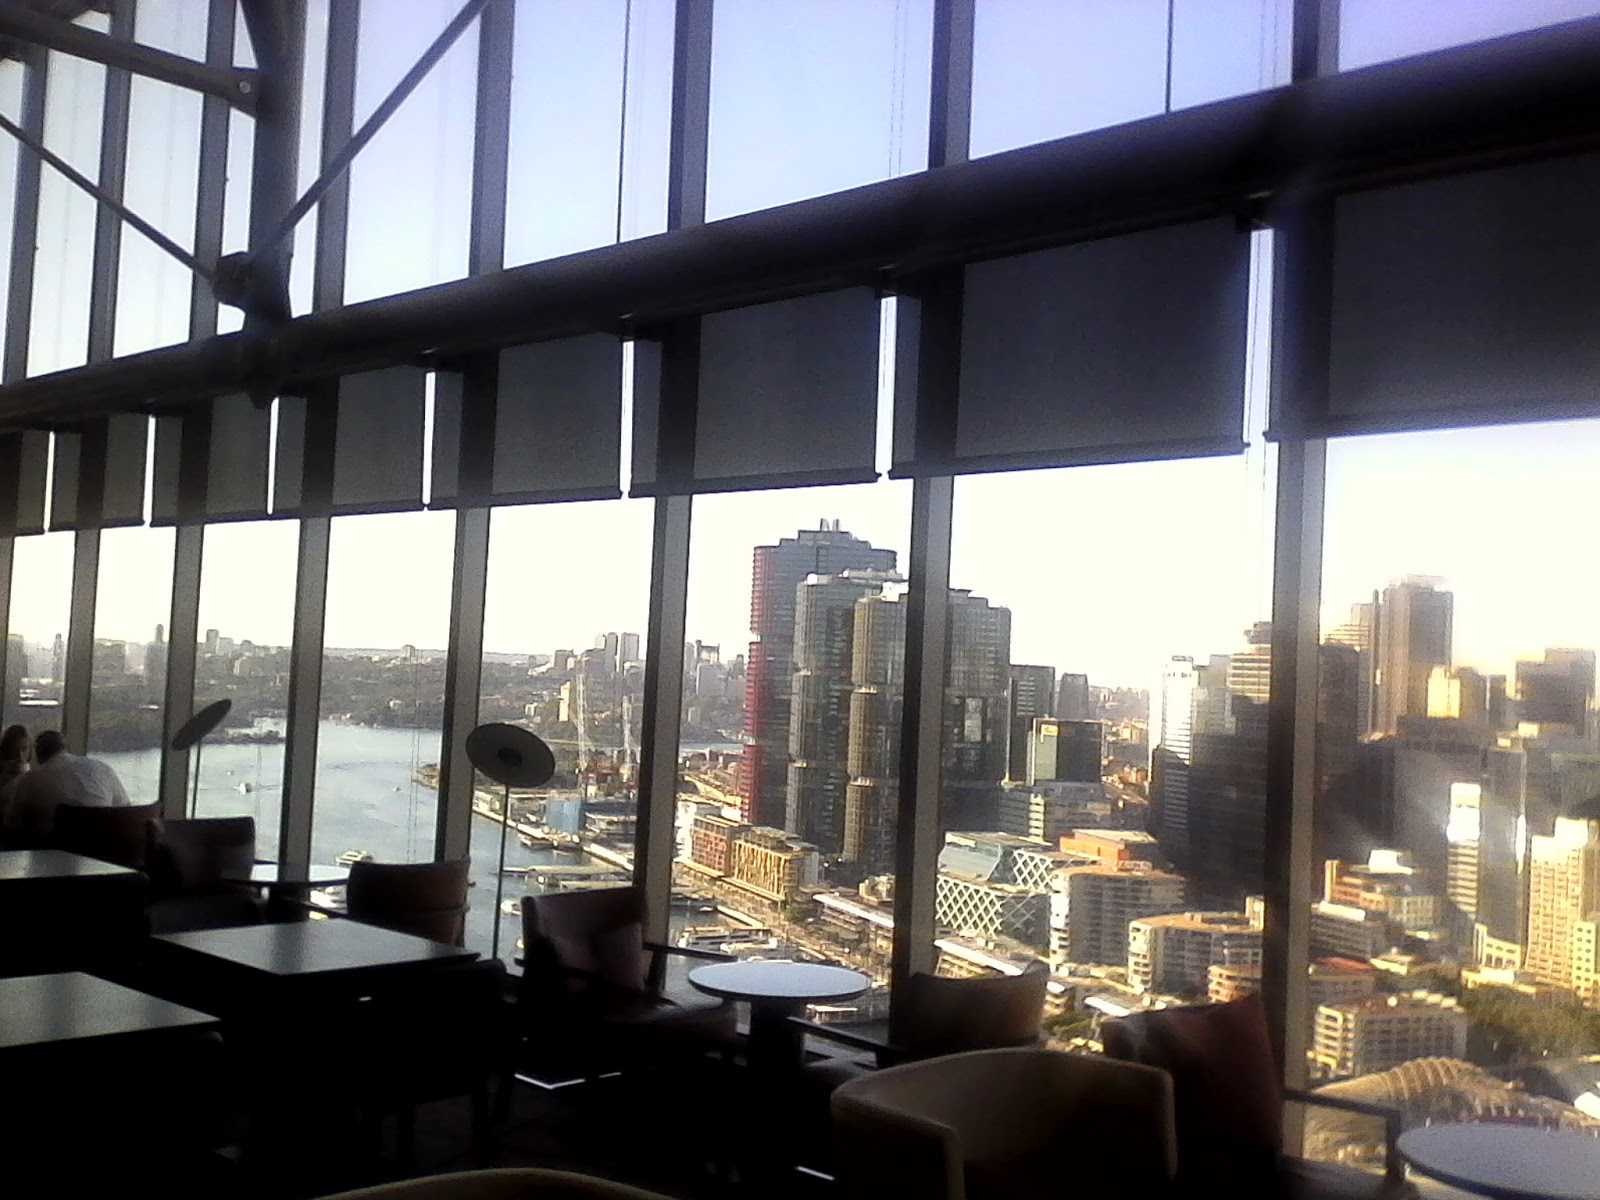 Dont read this crap 2018 n e view from club lounge on level 35 sofitel darling harbour the vaulted ceiling is spectacular solutioingenieria Image collections